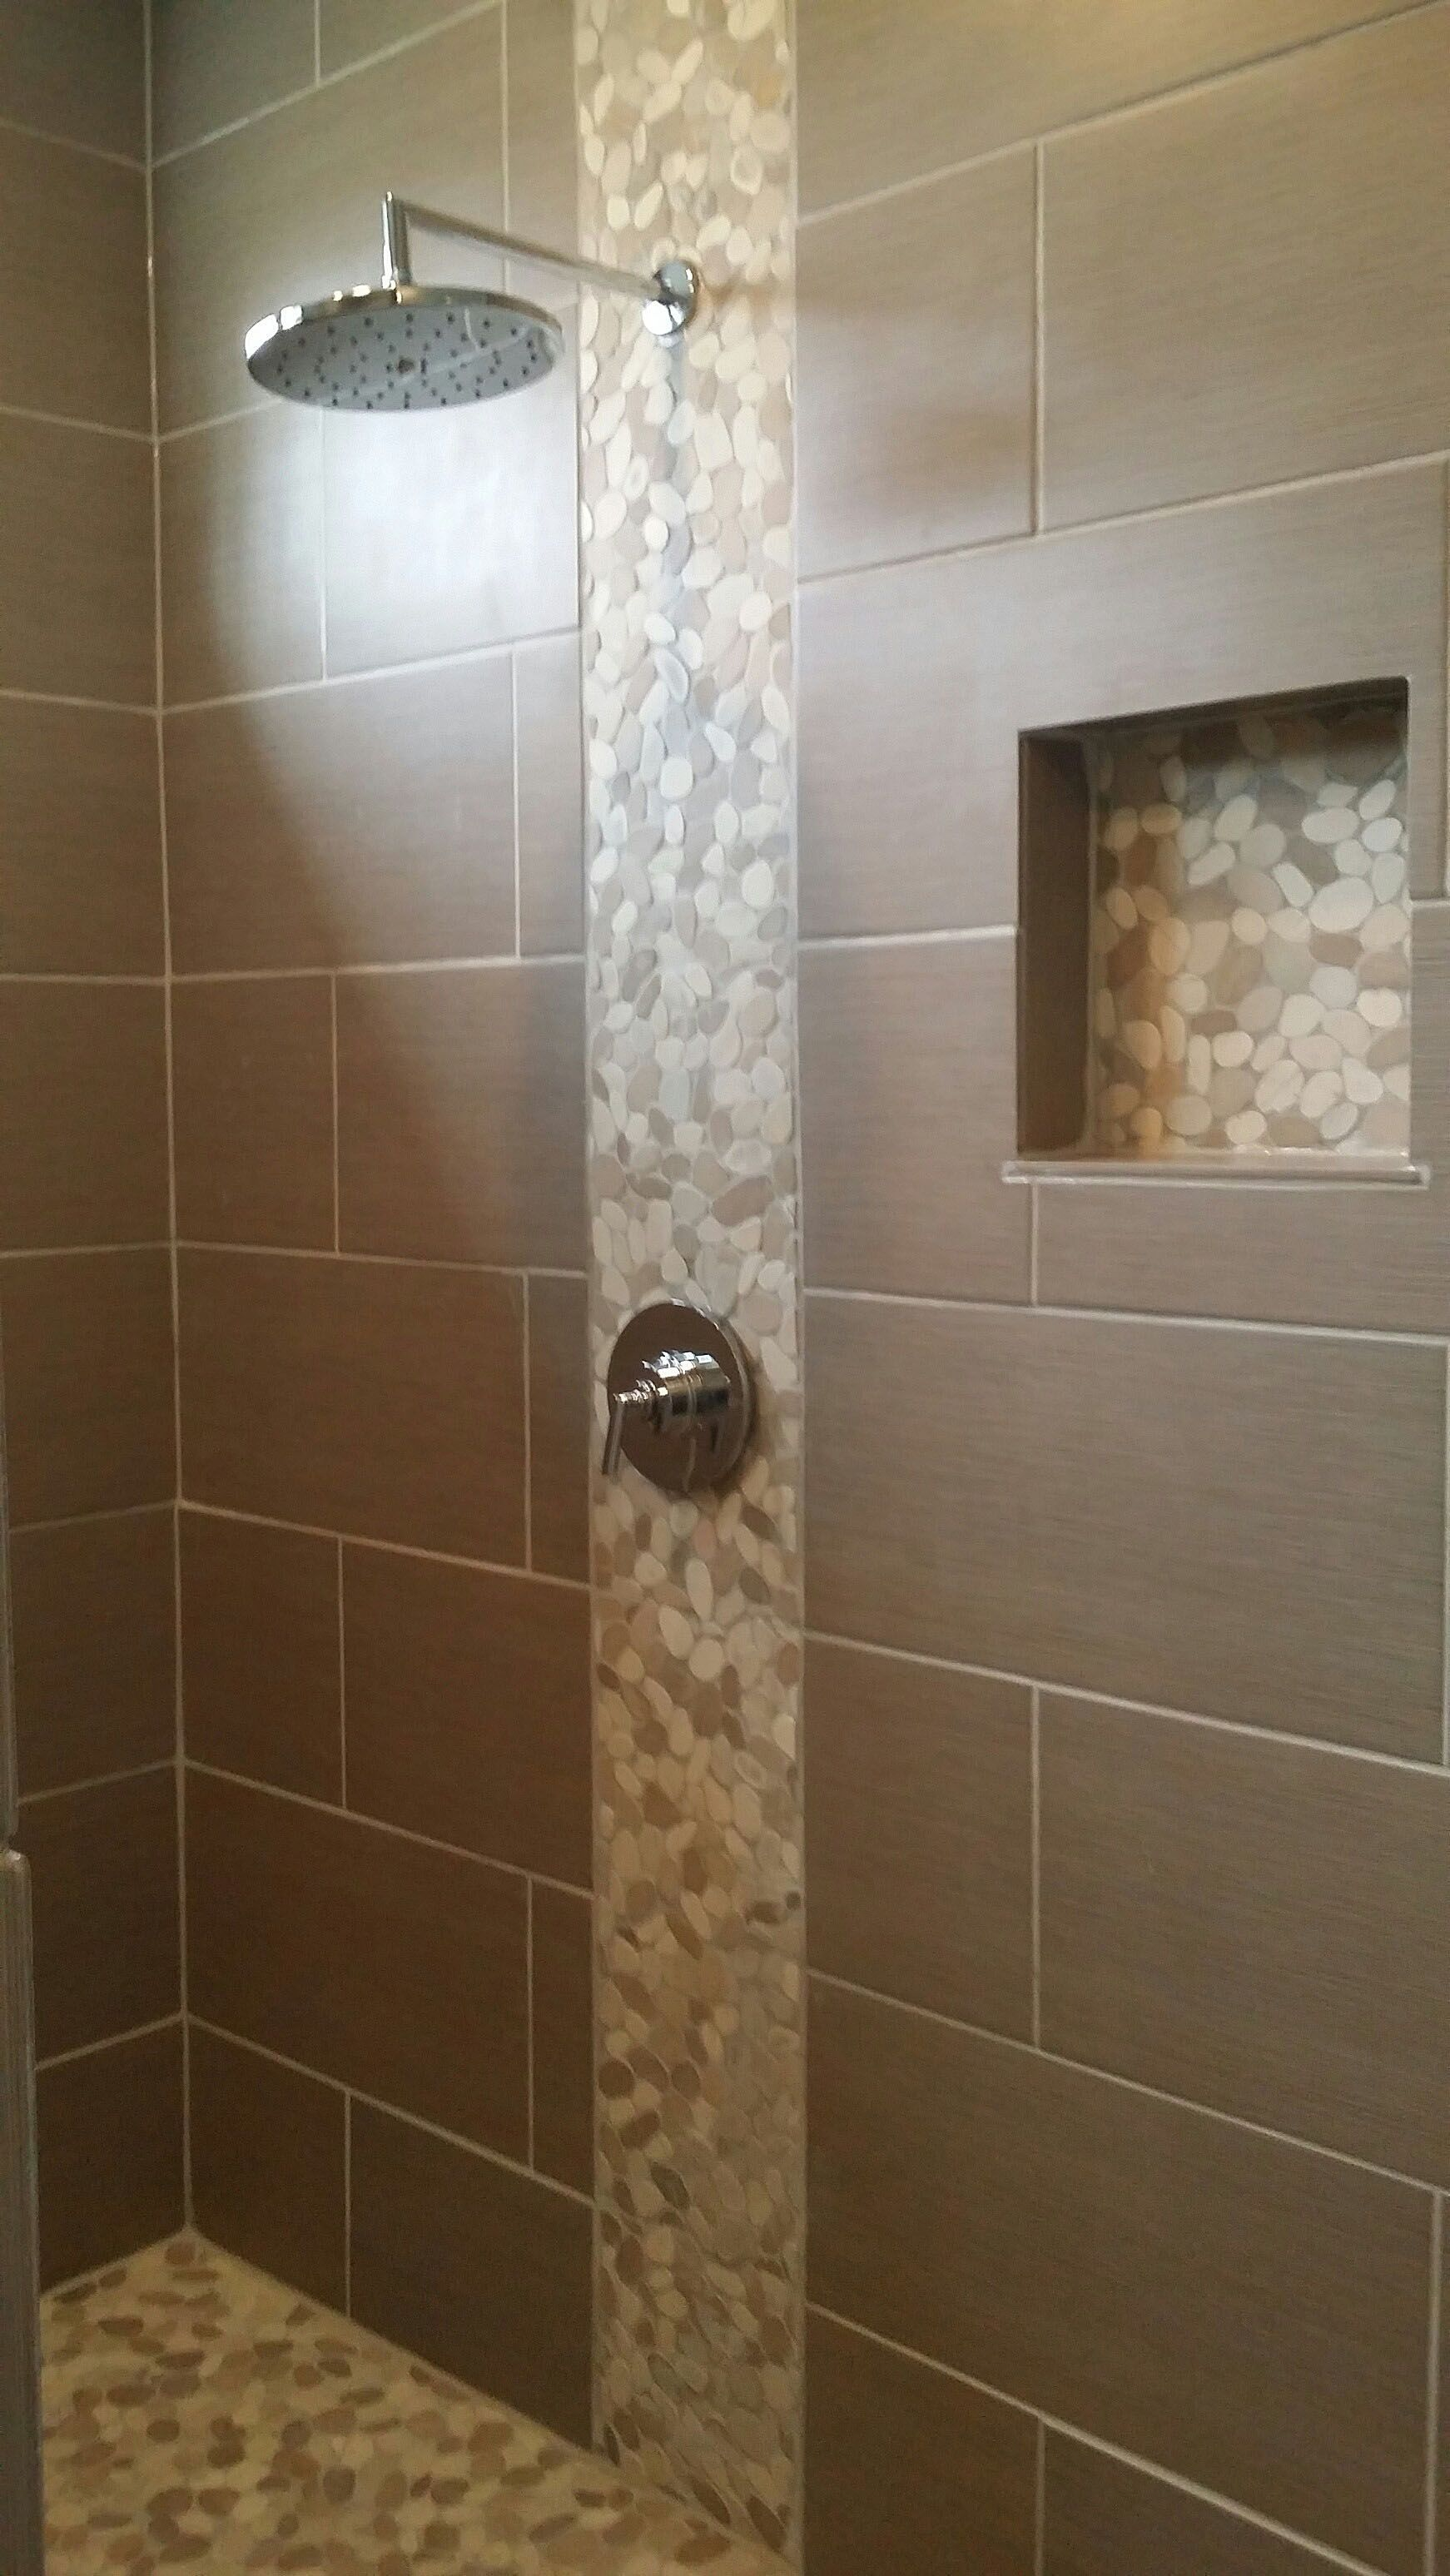 20 Best Bathroom Tile Patterns Ideas With Guide How To Place It Best Home Remodel Bathroom Remodel Shower Shower Remodel Bathroom Shower Tile